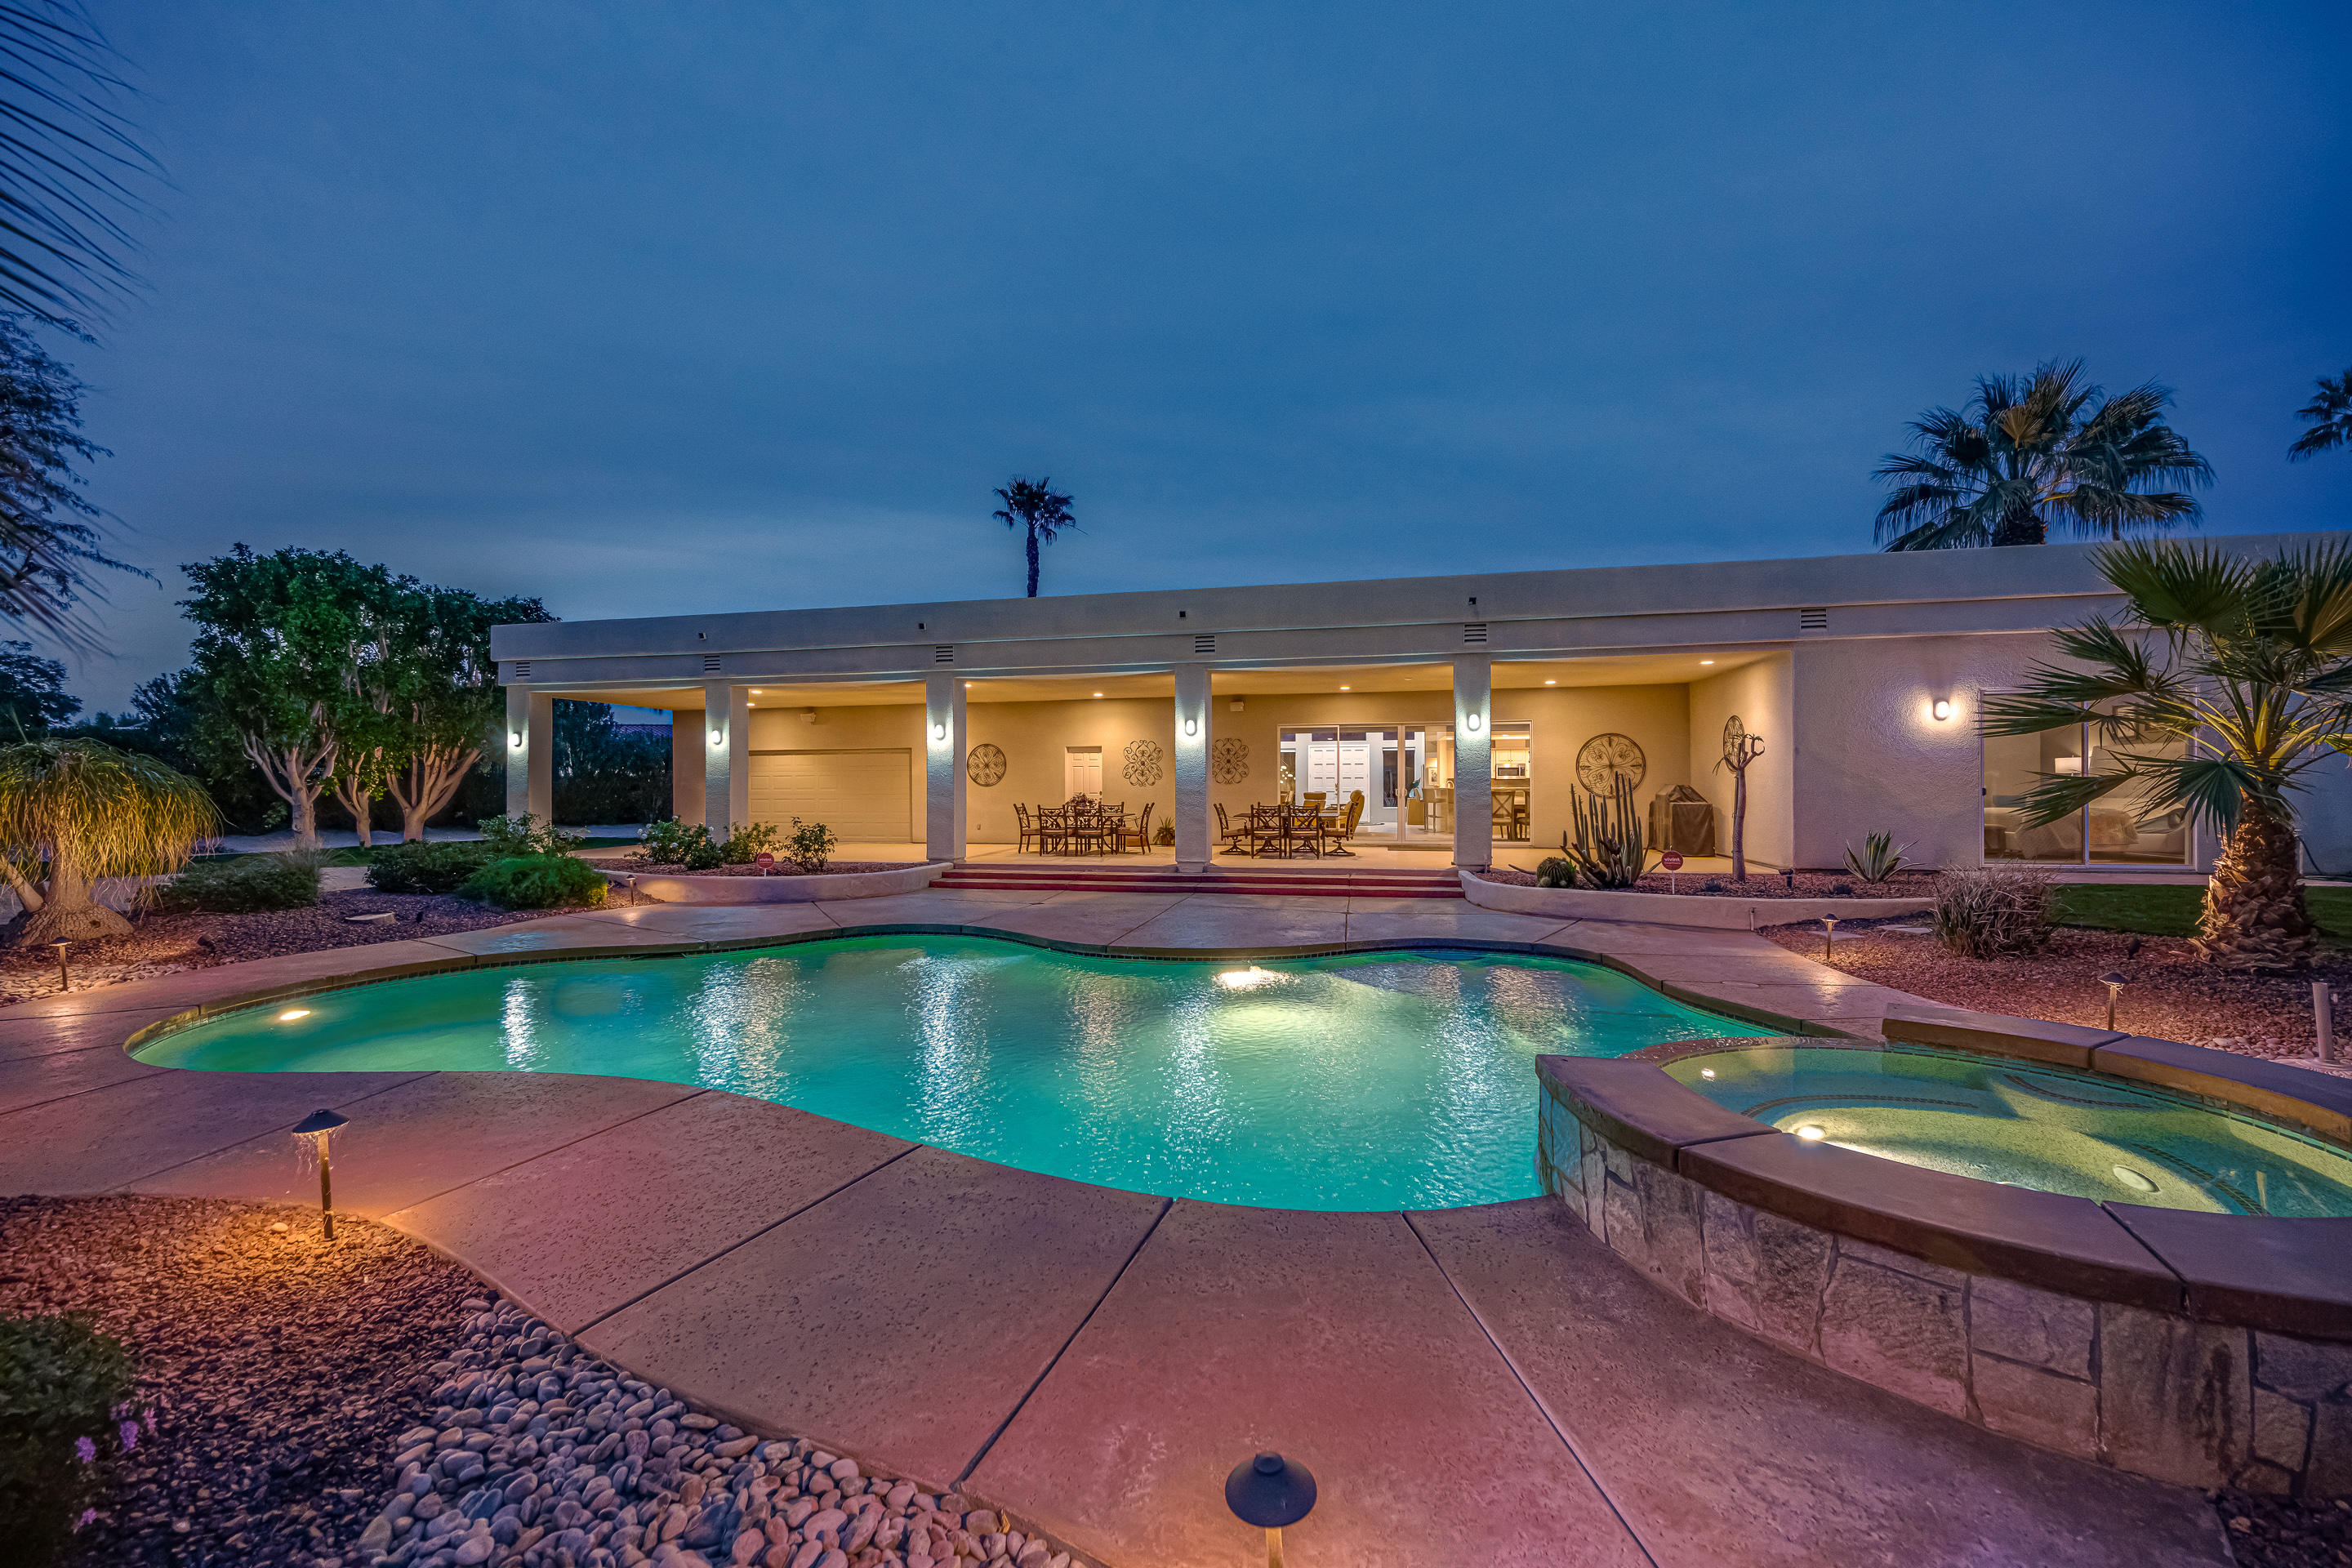 Photo of 80685 Wicket Lane, Indio, CA 92201